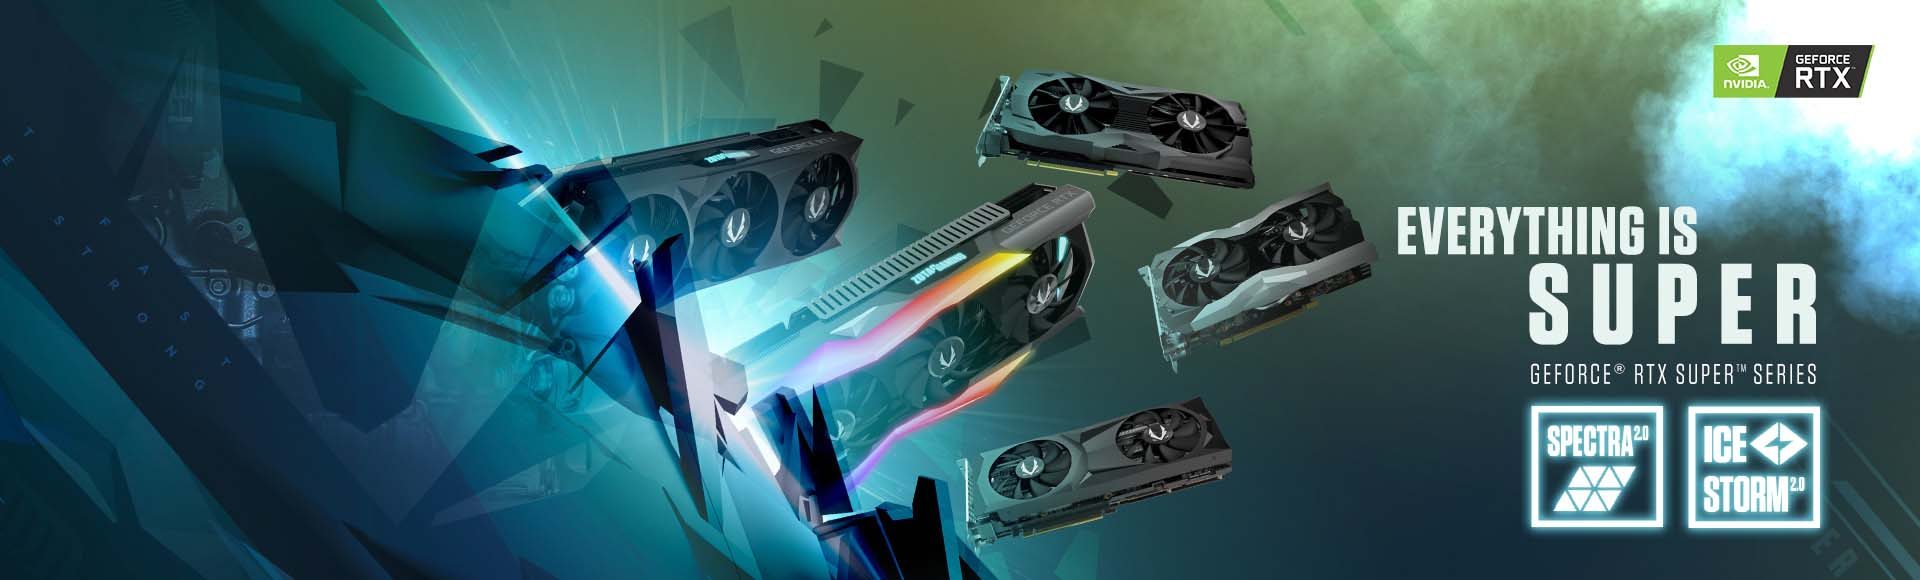 ZOTAC Introduces Its GeForce RTX SUPER Series Graphics Cards